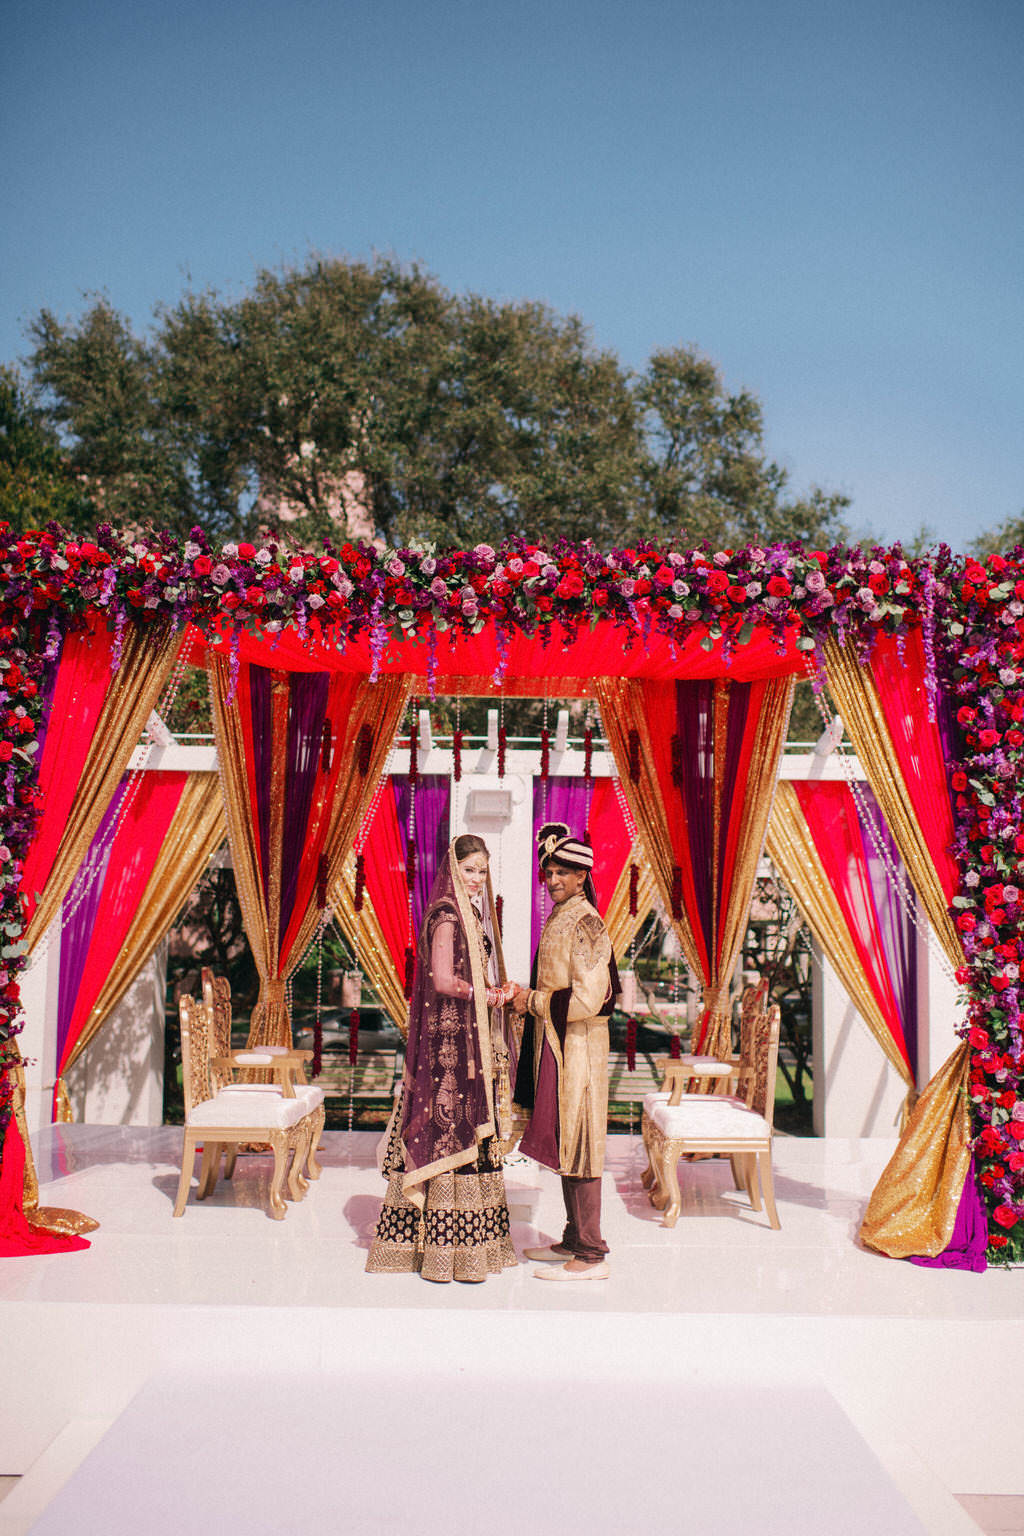 Luxurious Indian Hindu Traditional Wedding Ceremony Portrait of Bride and Groom Under Elegant Red, Gold and Purple Draping with Extravagant Colorful Lush Red, Purple, Plum, Lilac Floral Arrangements | St. Pete Wedding Venue North Straub Park